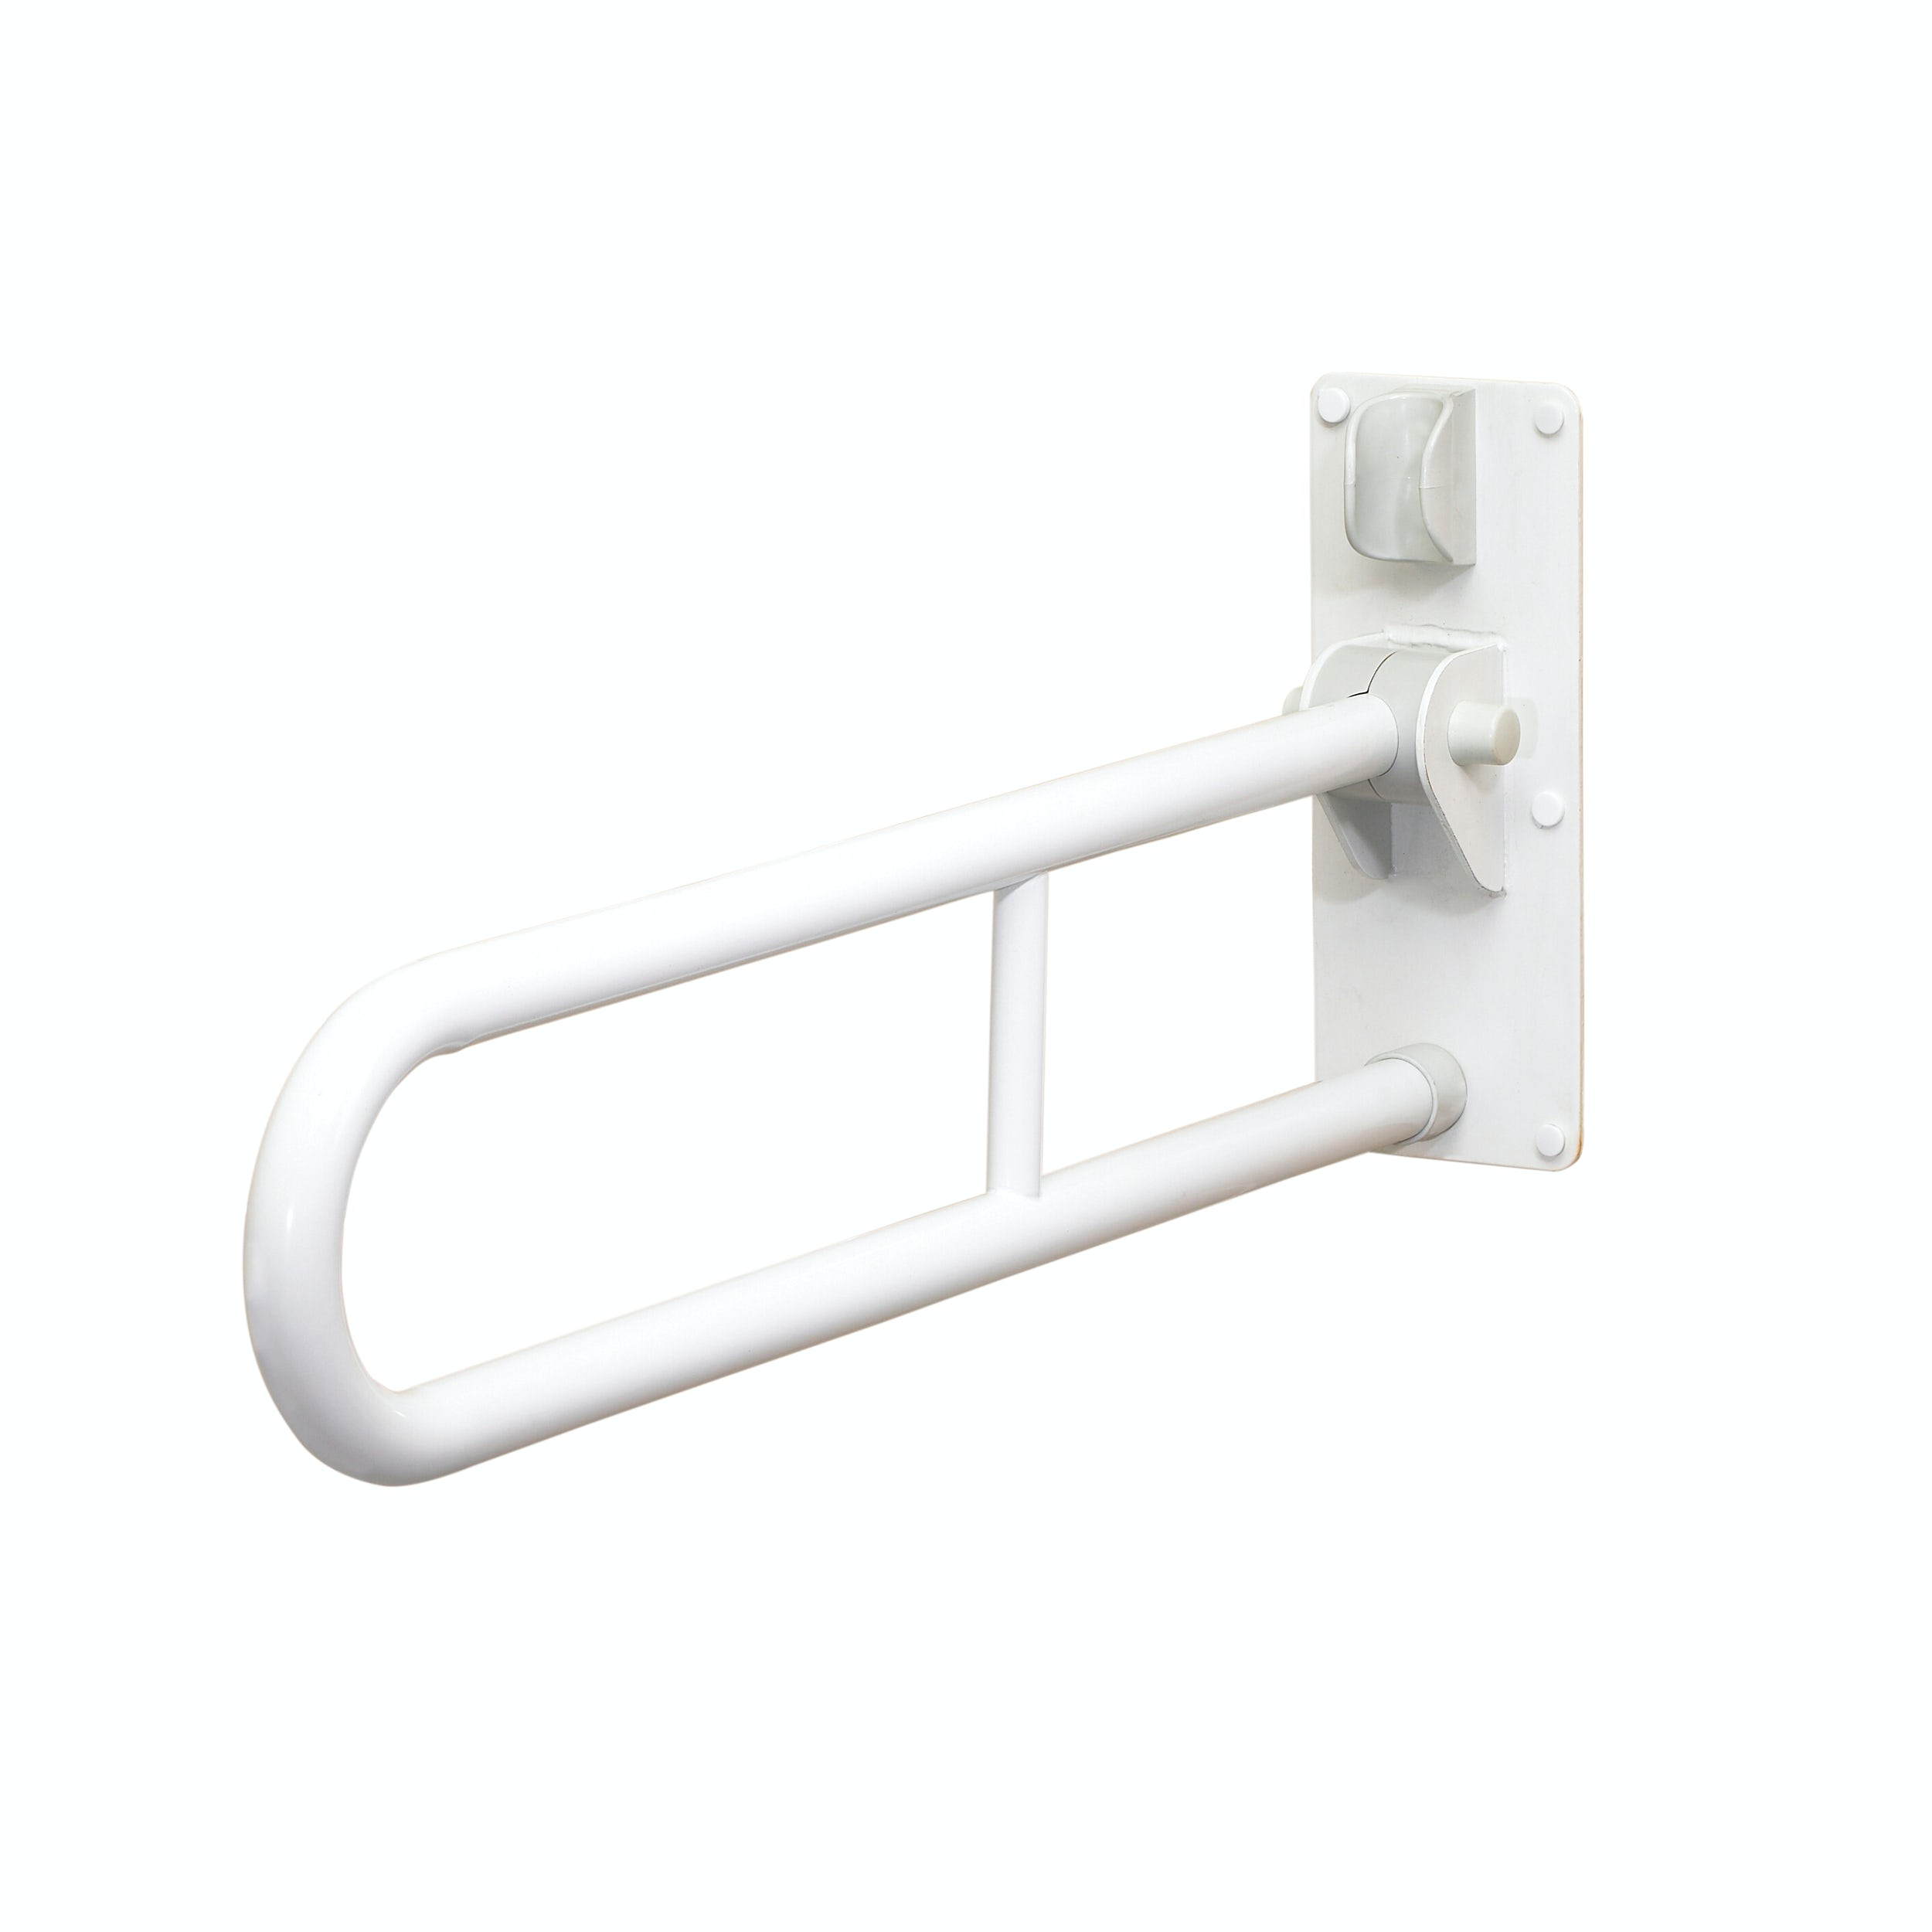 AKW Folding support grab rail white